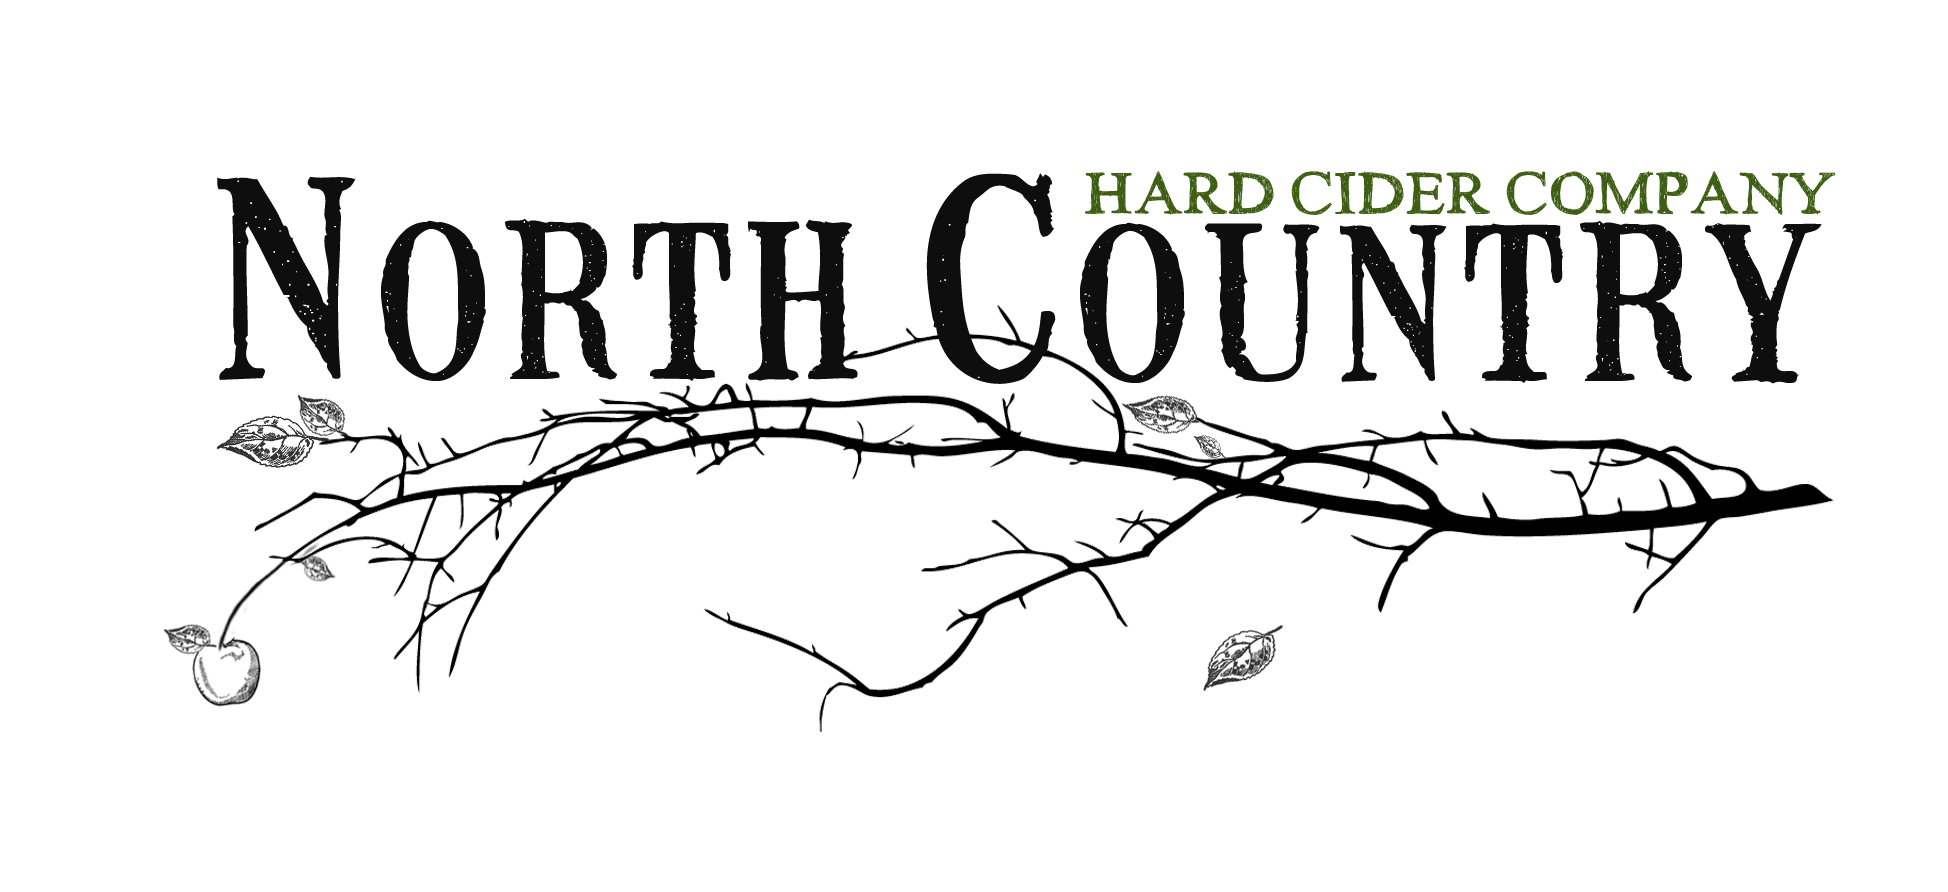 North Country Hard Cider Company